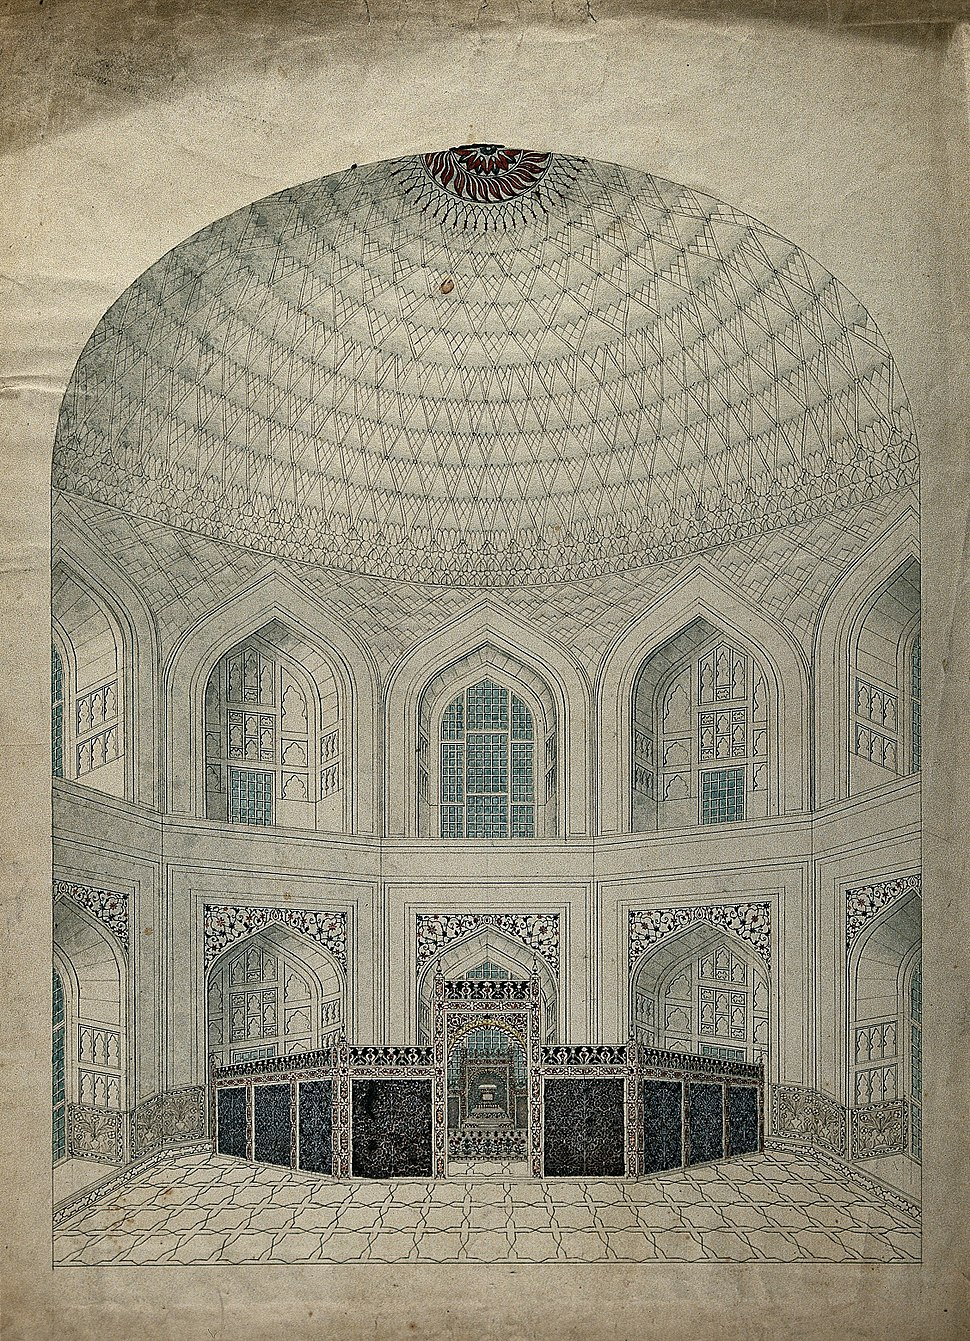 Interior view of the vaulted dome over the tombs of Shah Jahan and Mumtaz.